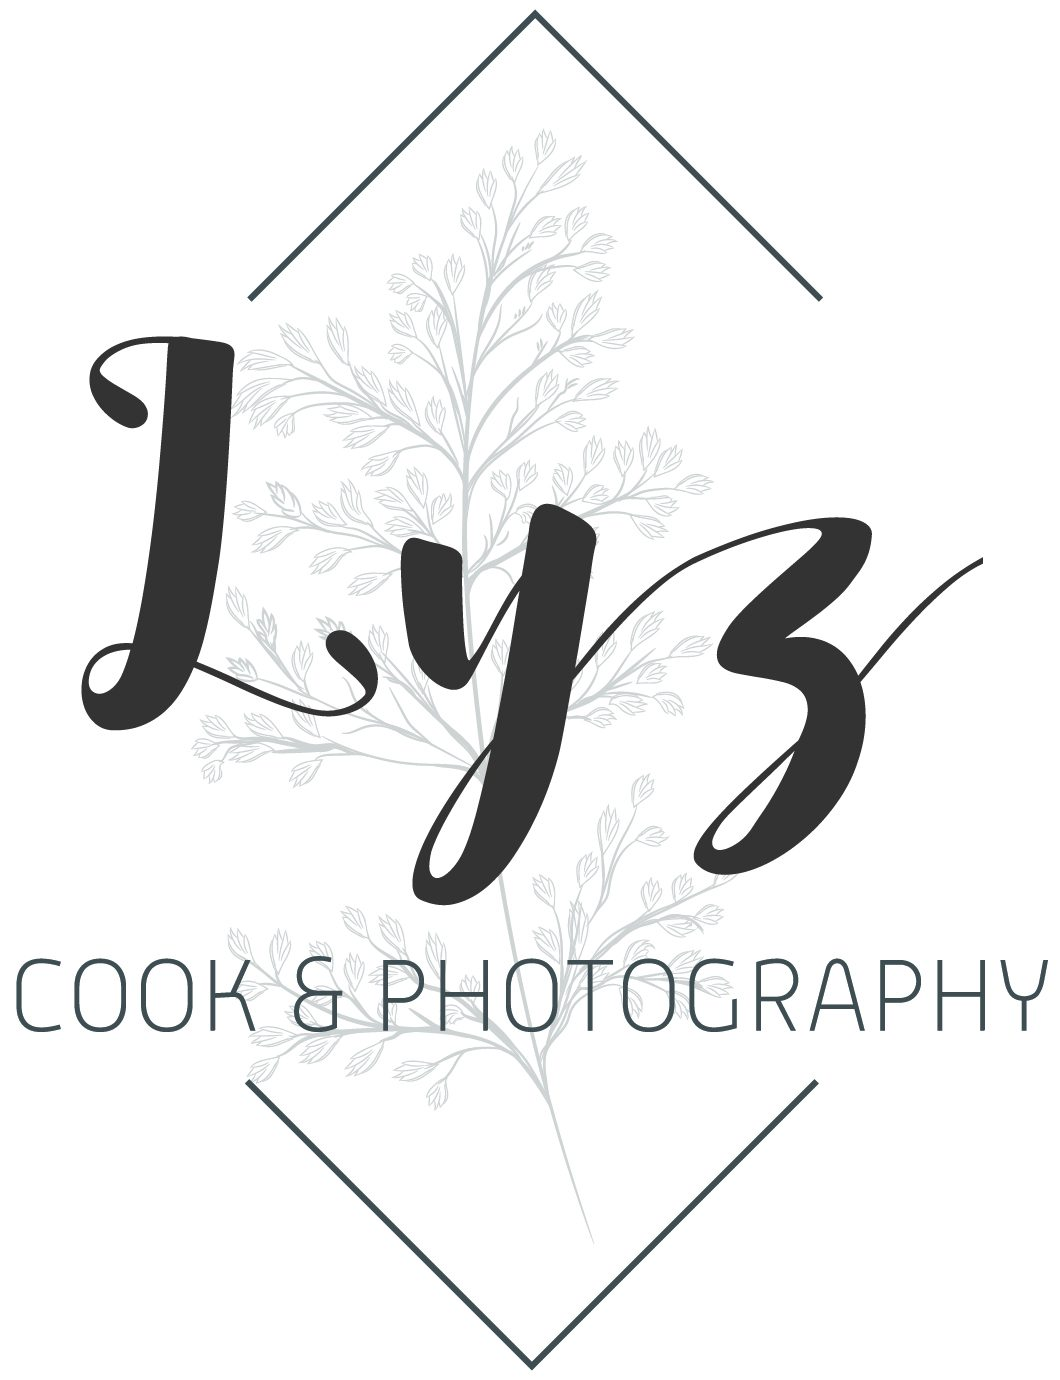 Lyz Cook & Photography